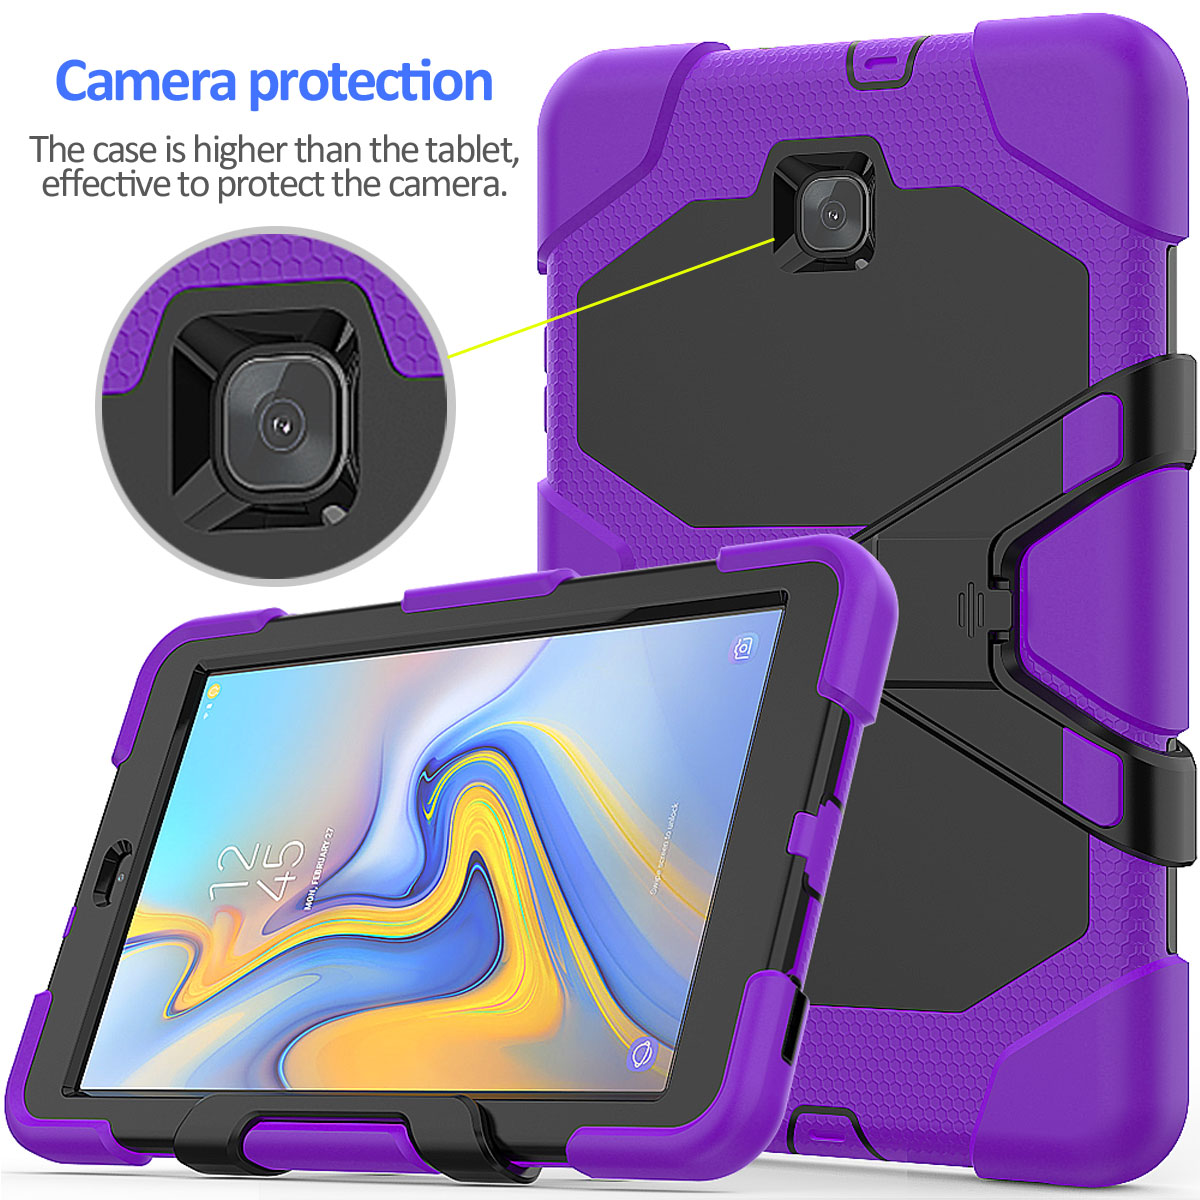 Rugged-Hard-Case-For-Samsung-Galaxy-Tab-A-8-0-2018-SM-T387-with-Screen-Protector thumbnail 30